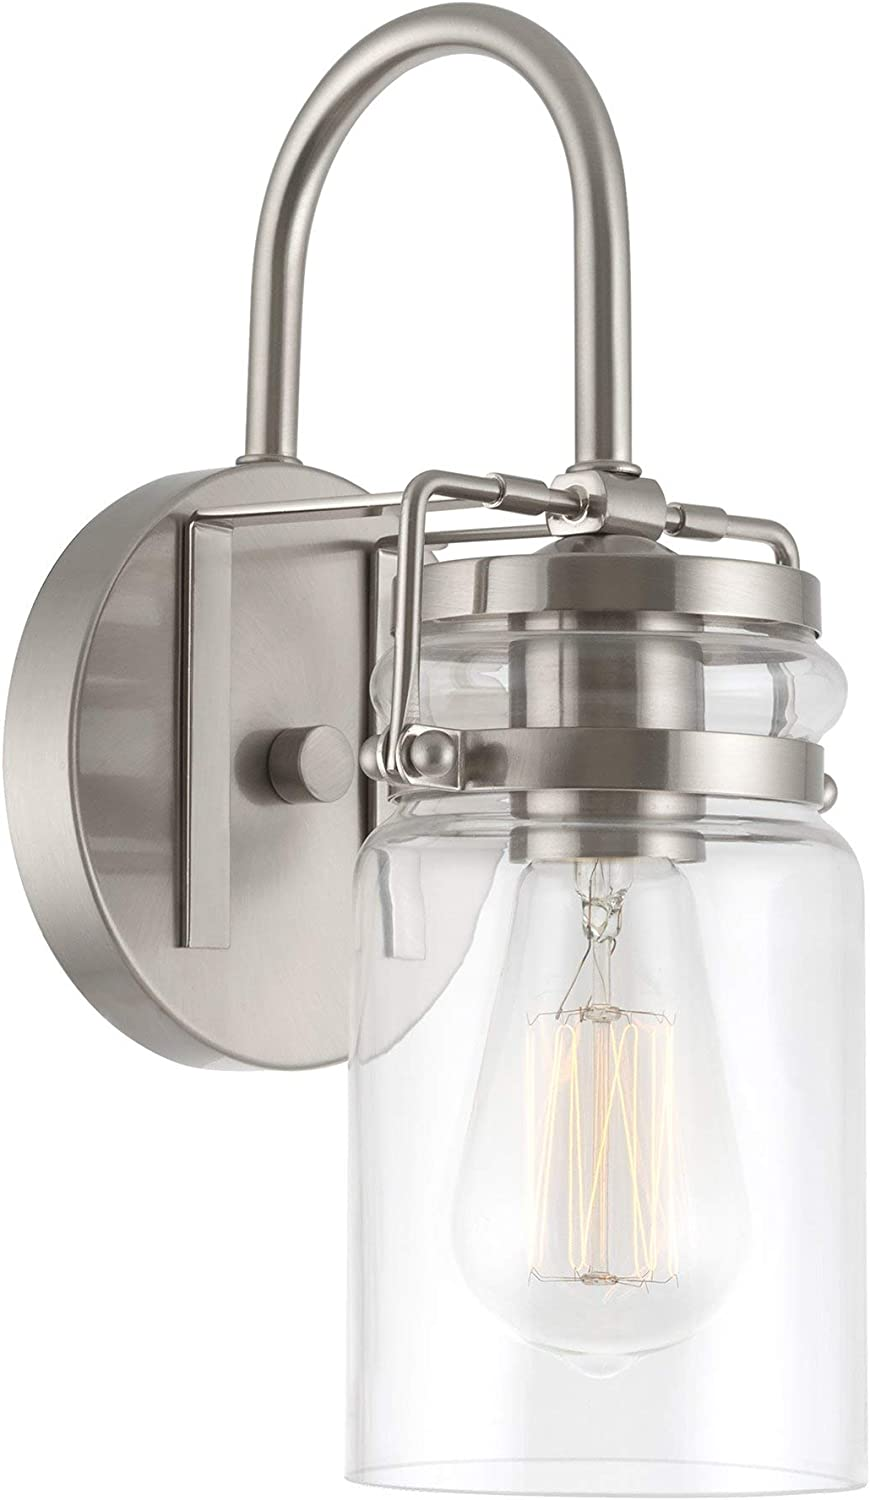 Brushed Nickel-2 Pack Finish Kichler 45576NI Brinley 1-Light Wall Sconce and Clear Glass Shade